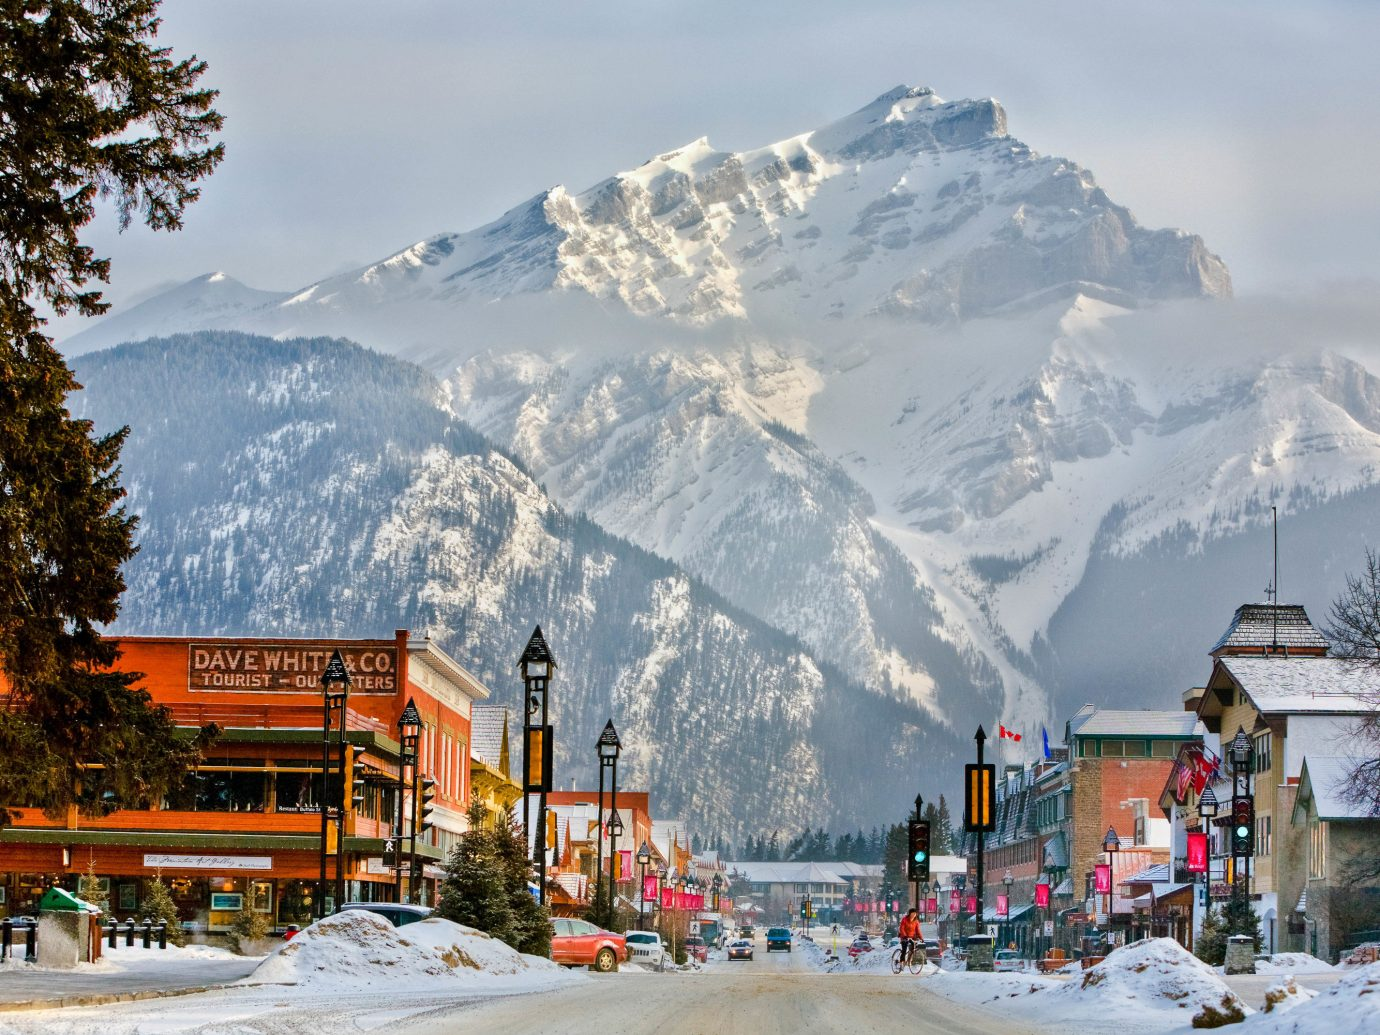 Downtown with Mt. Norquay in the background